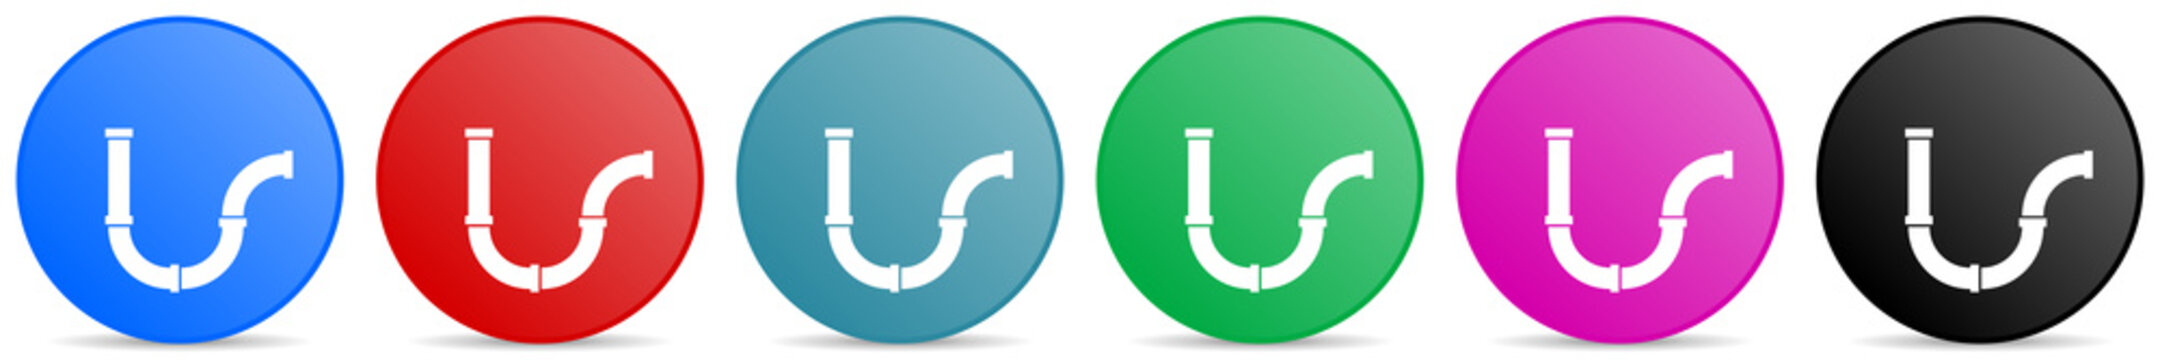 Pipeline, tube, pipe and industrial vector icons, set of circle gradient buttons in 6 colors options for webdesign and mobile applications